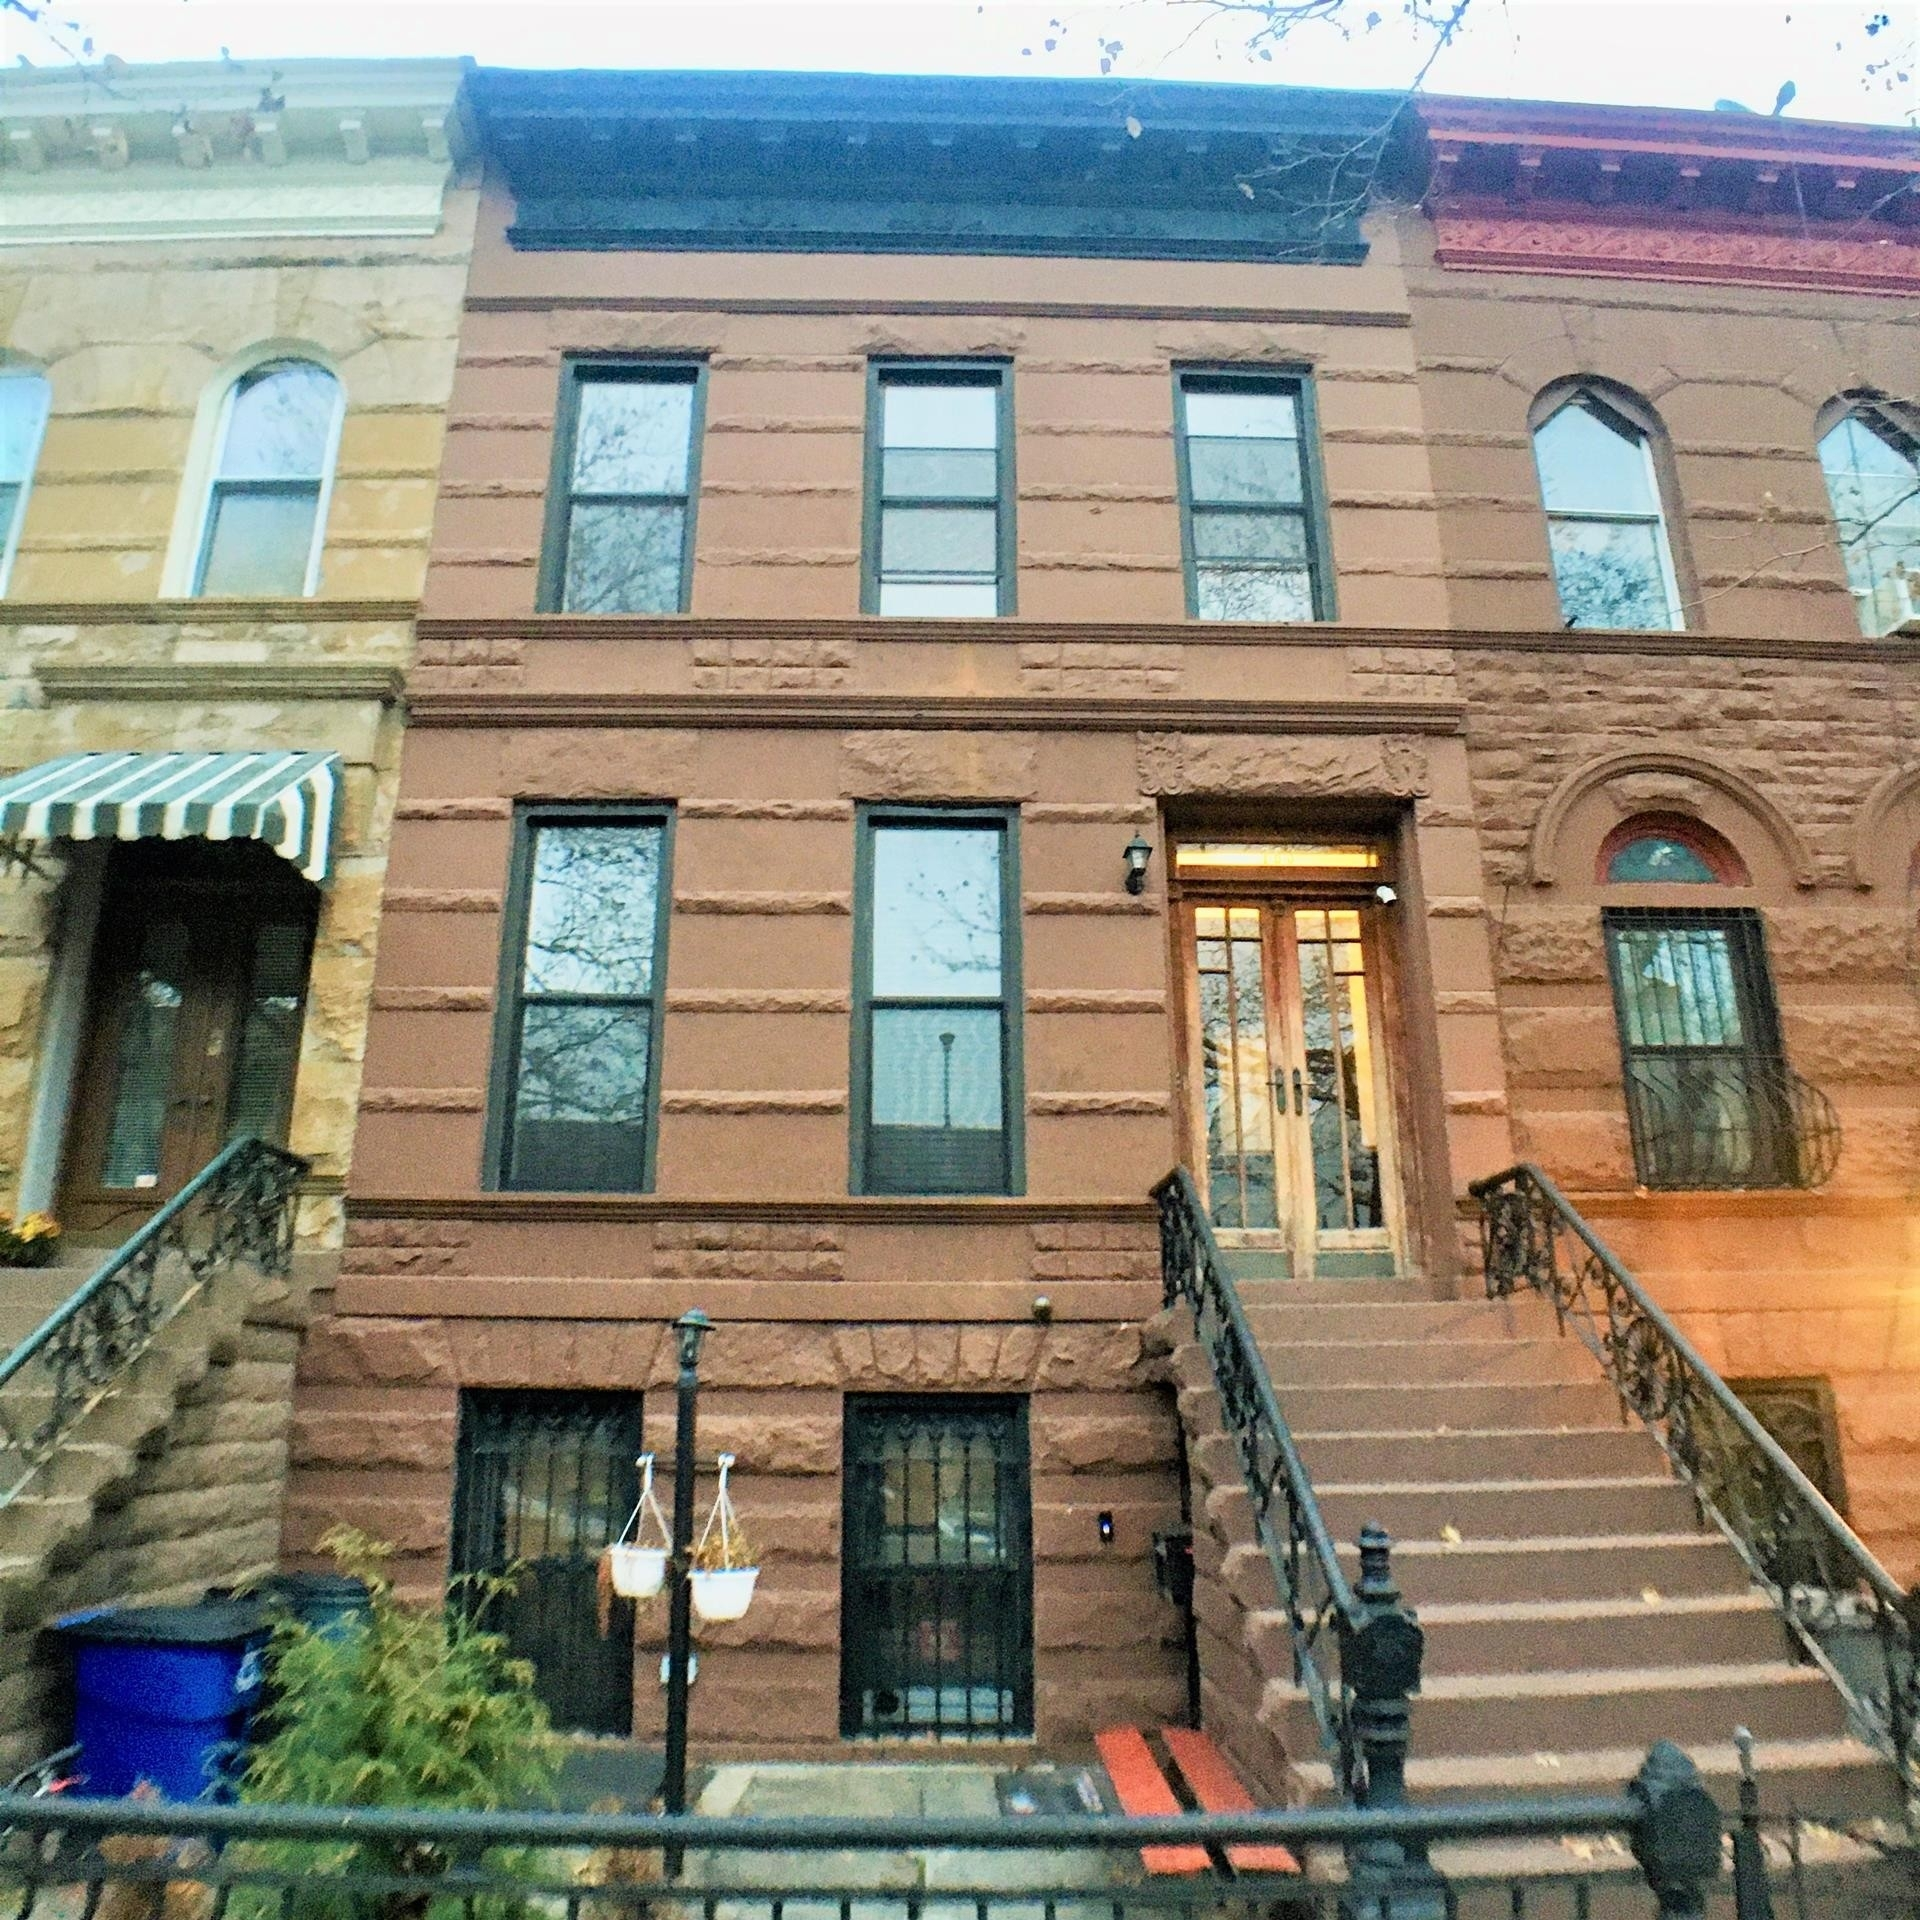 1. 建於763 Jefferson Avenue, Bedford Stuyvesant, Brooklyn, NY